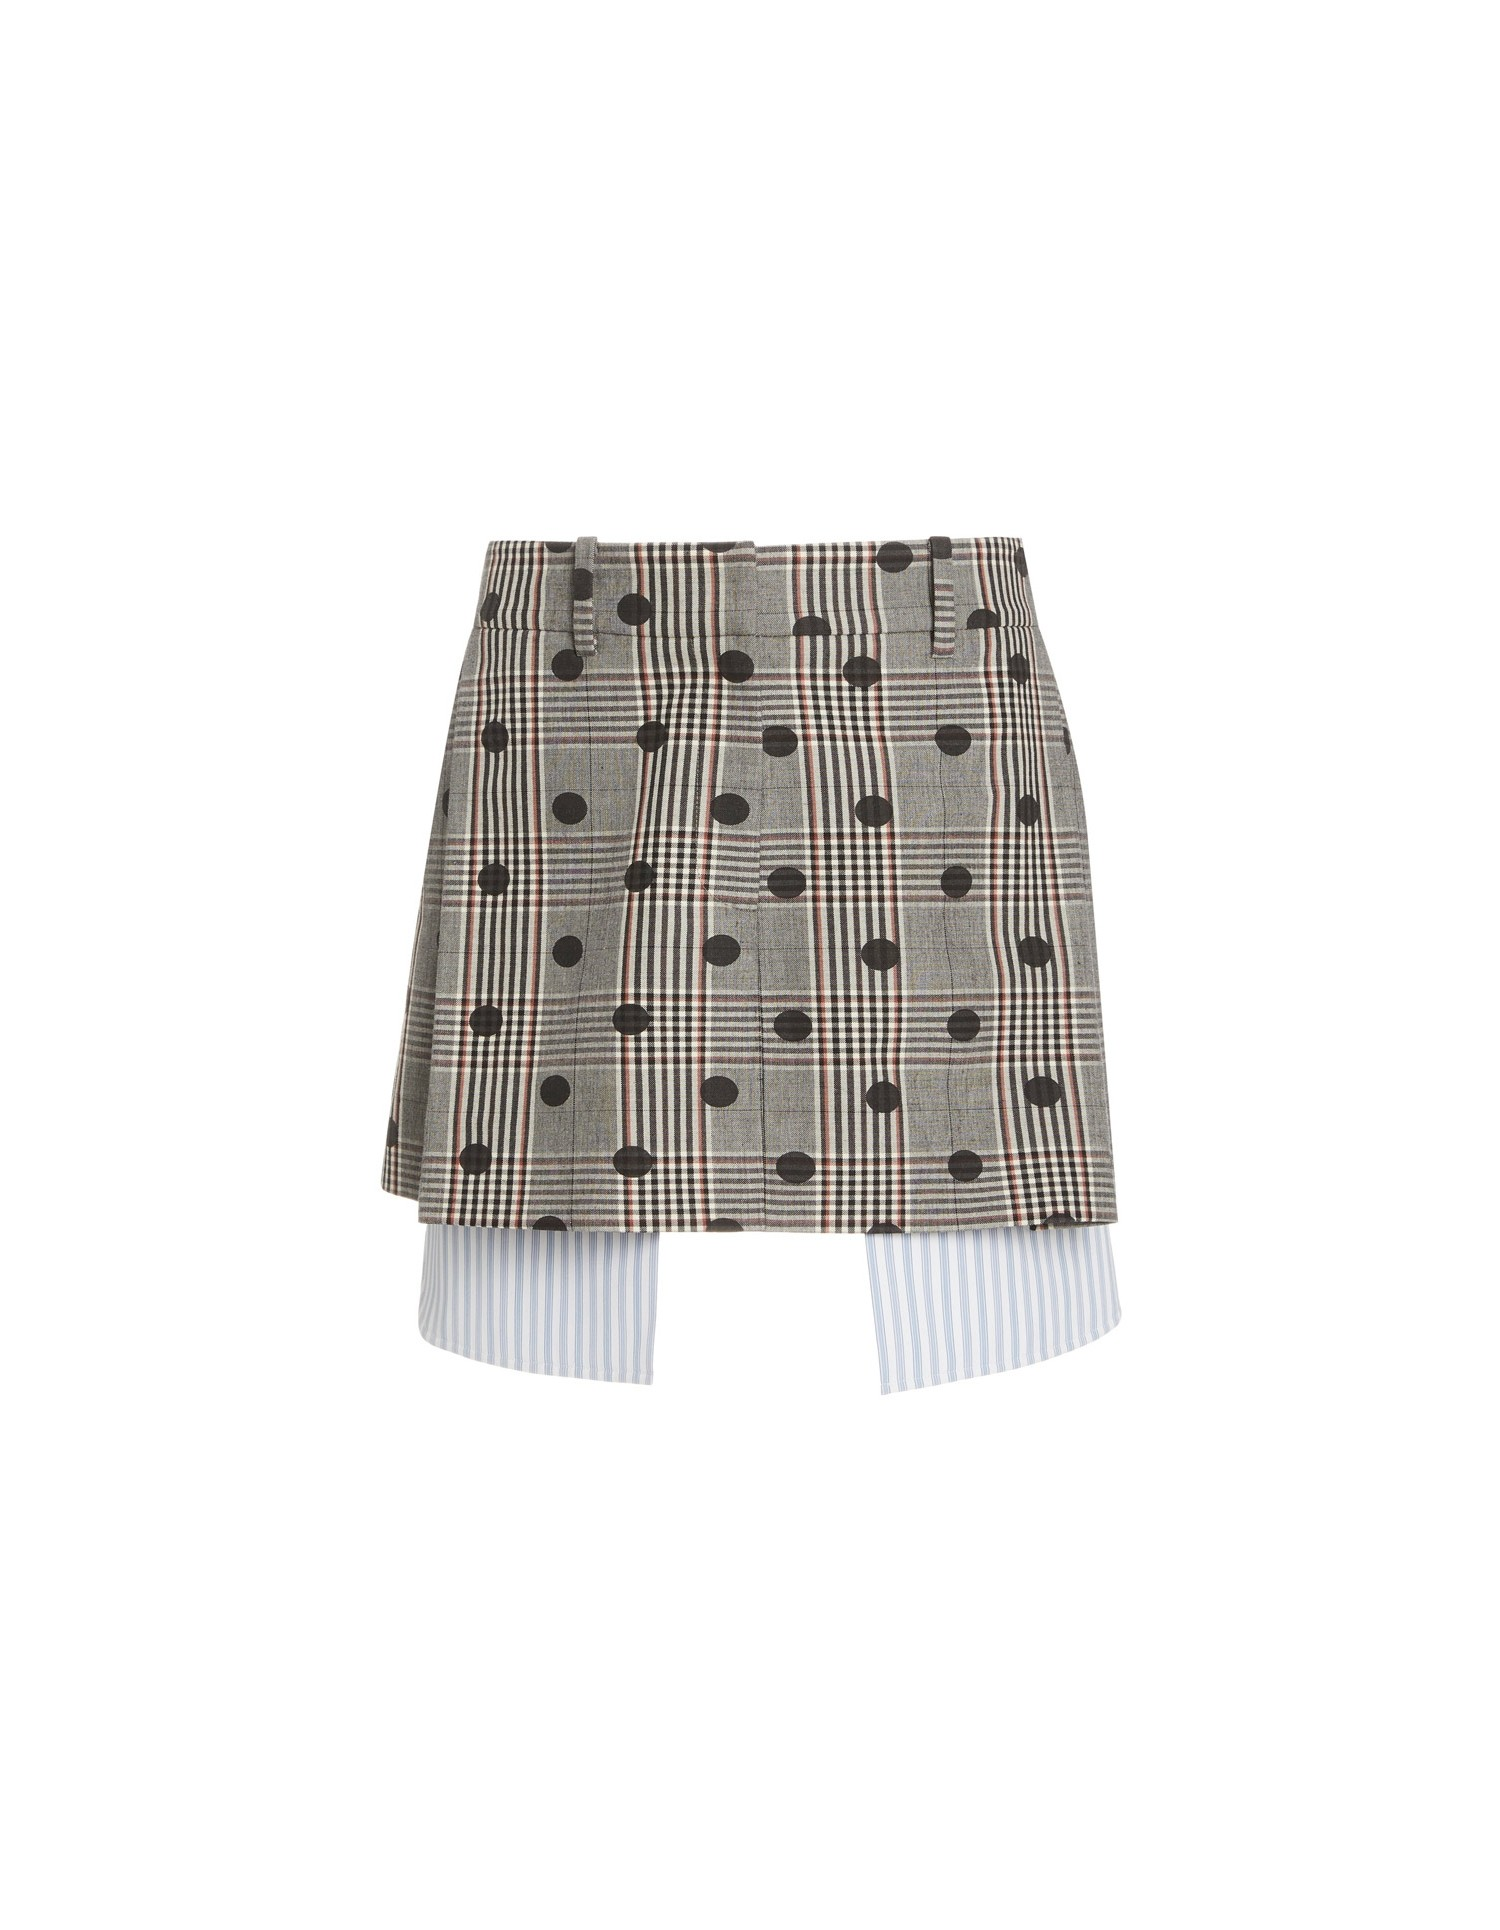 MONSE Pocket Mini Skirt Flat Front